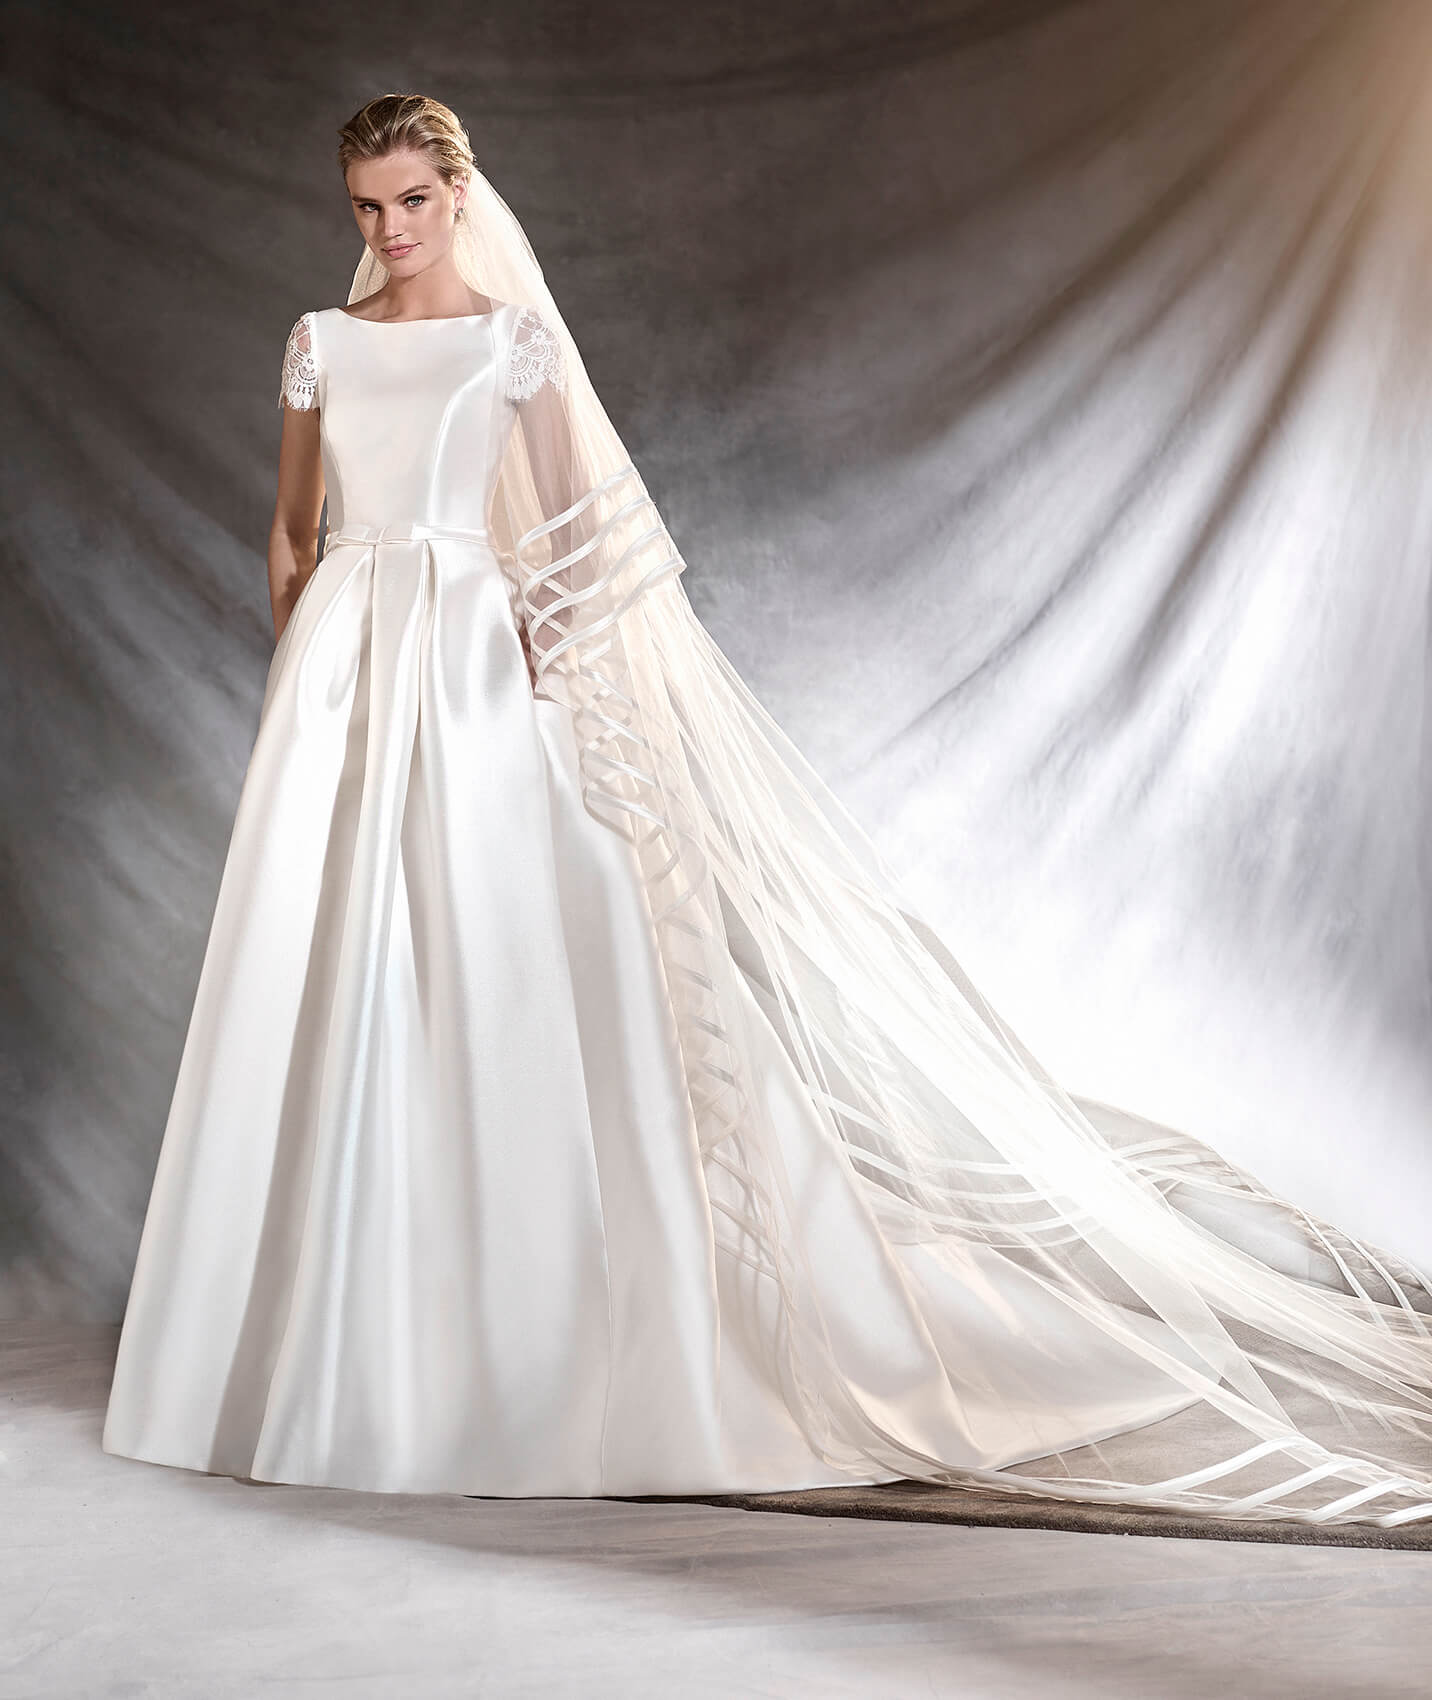 Otelo wedding dress